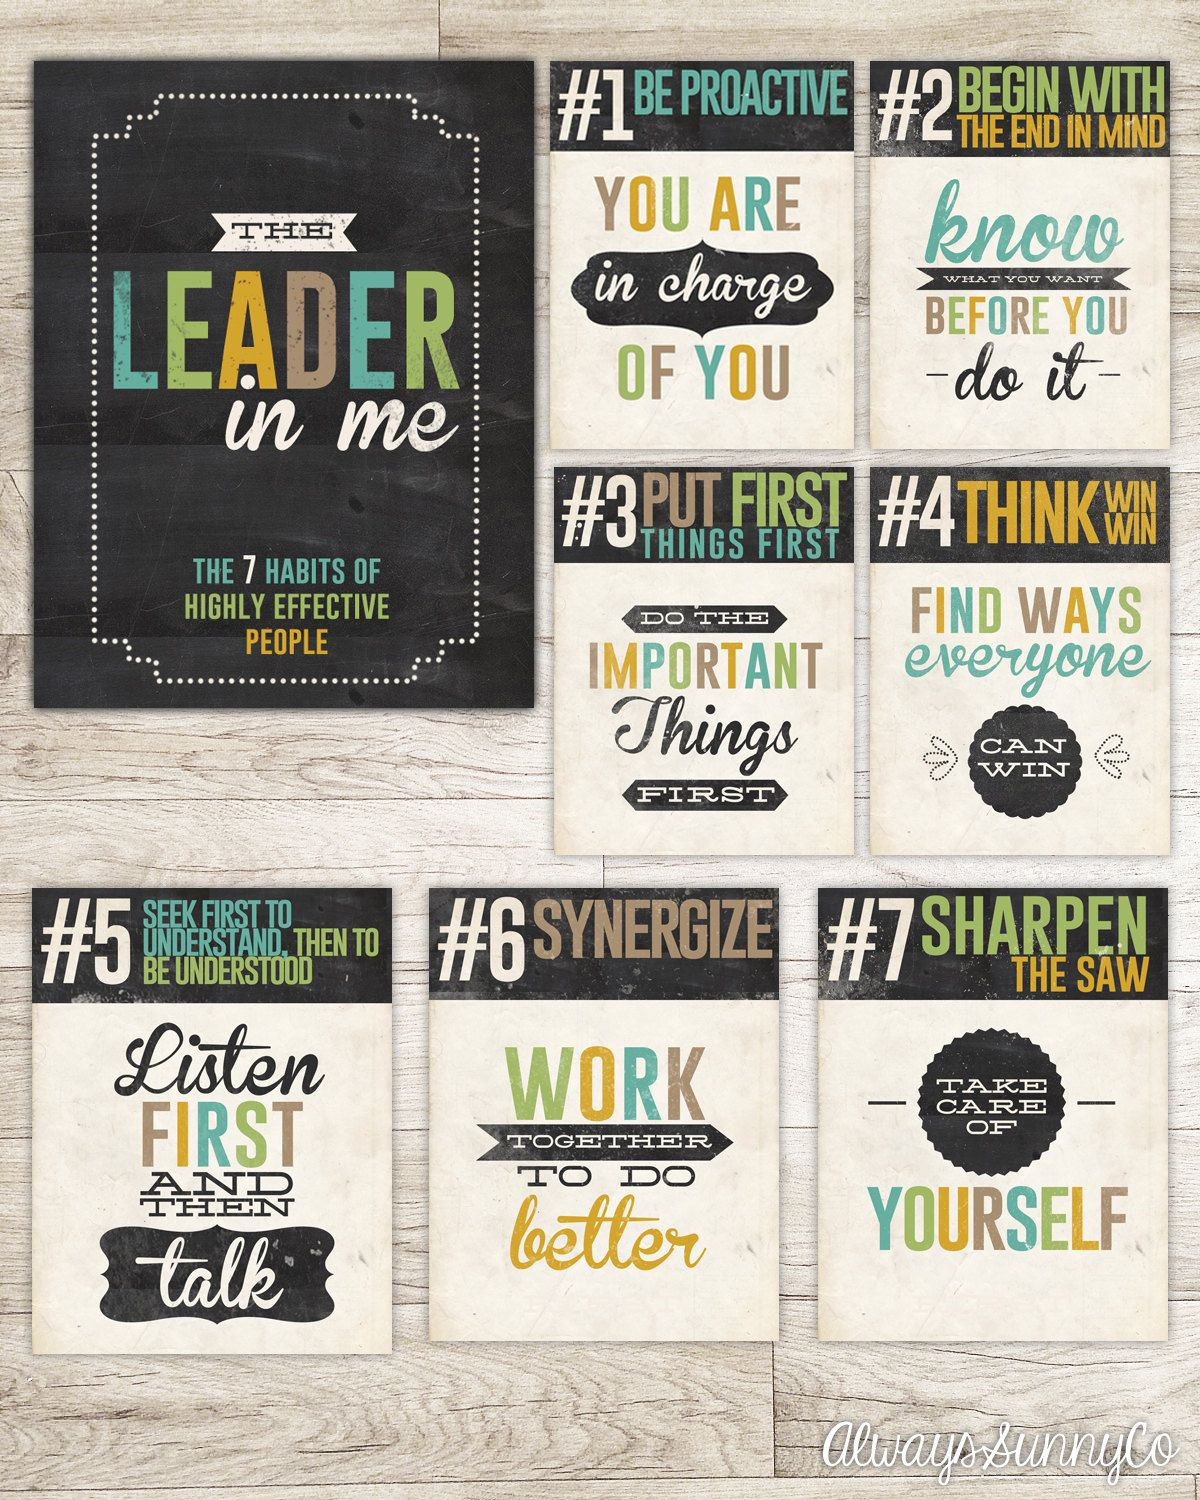 Unique 7 Habits Of Highly Effective People Poster